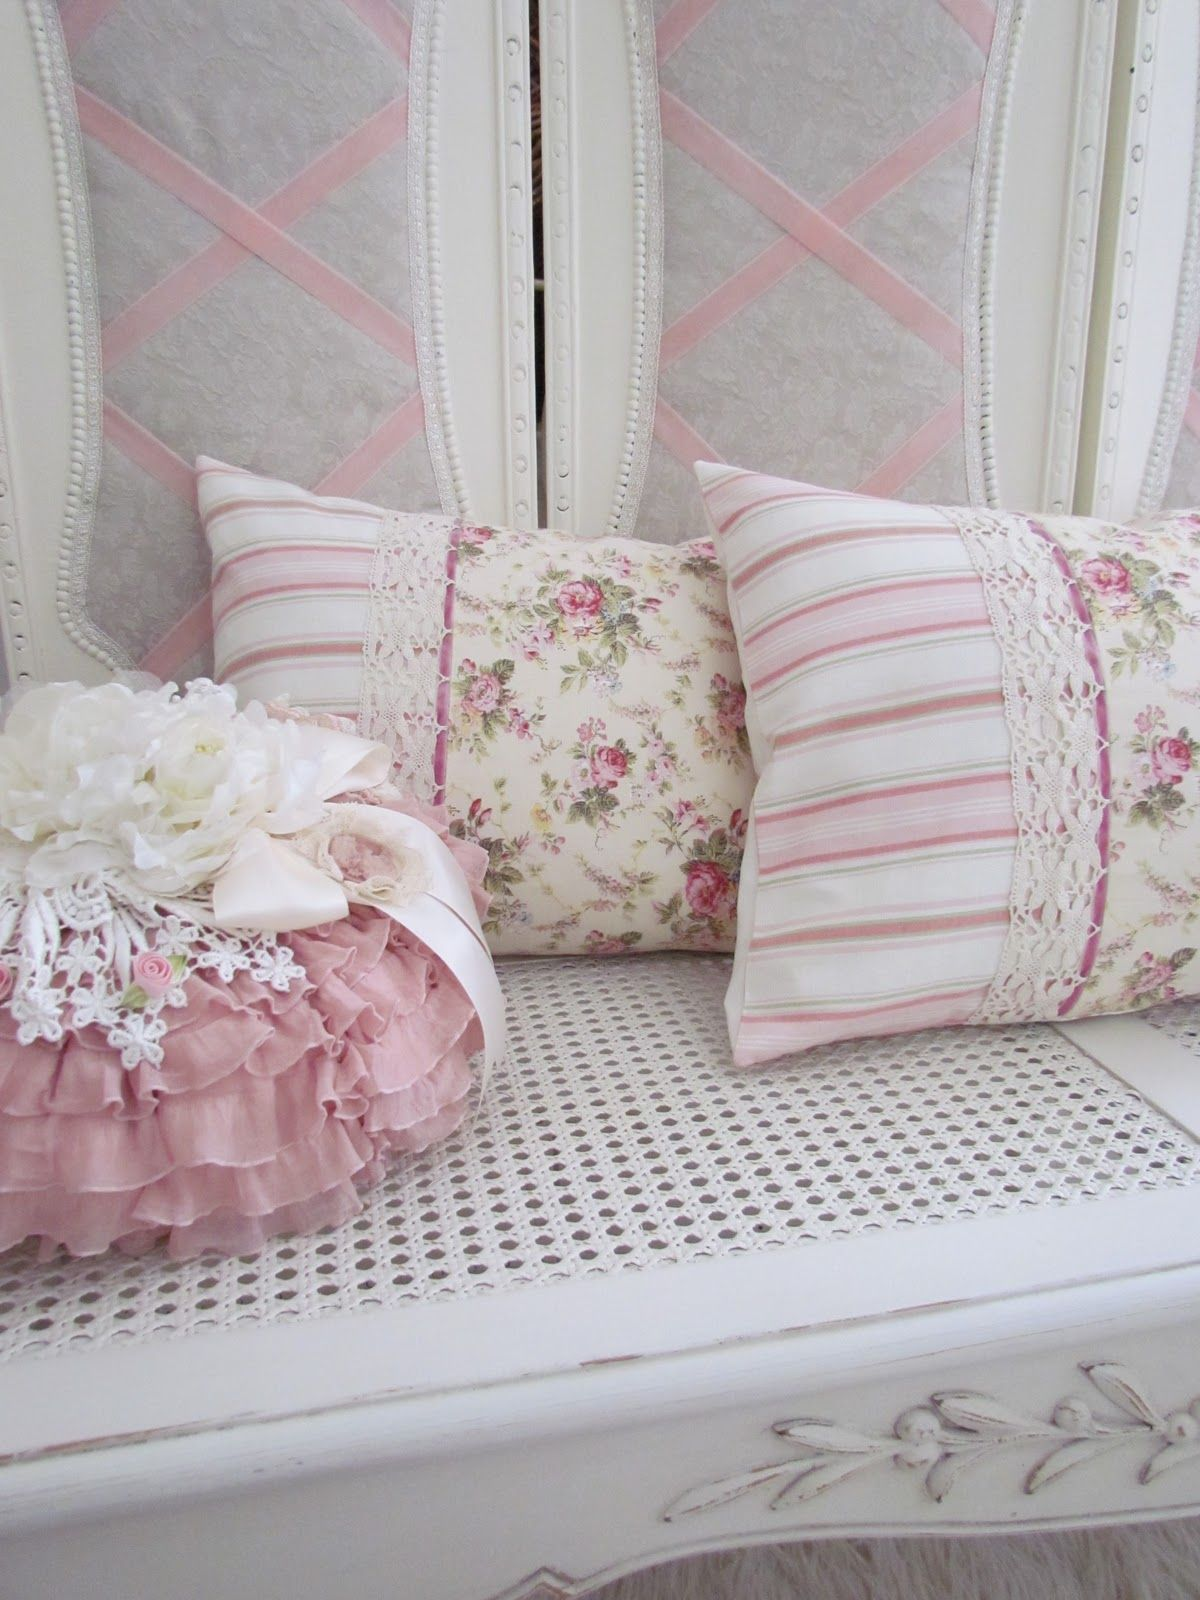 Shabby Chic | Shabby chic decor, Shabby chic pillows, Chic